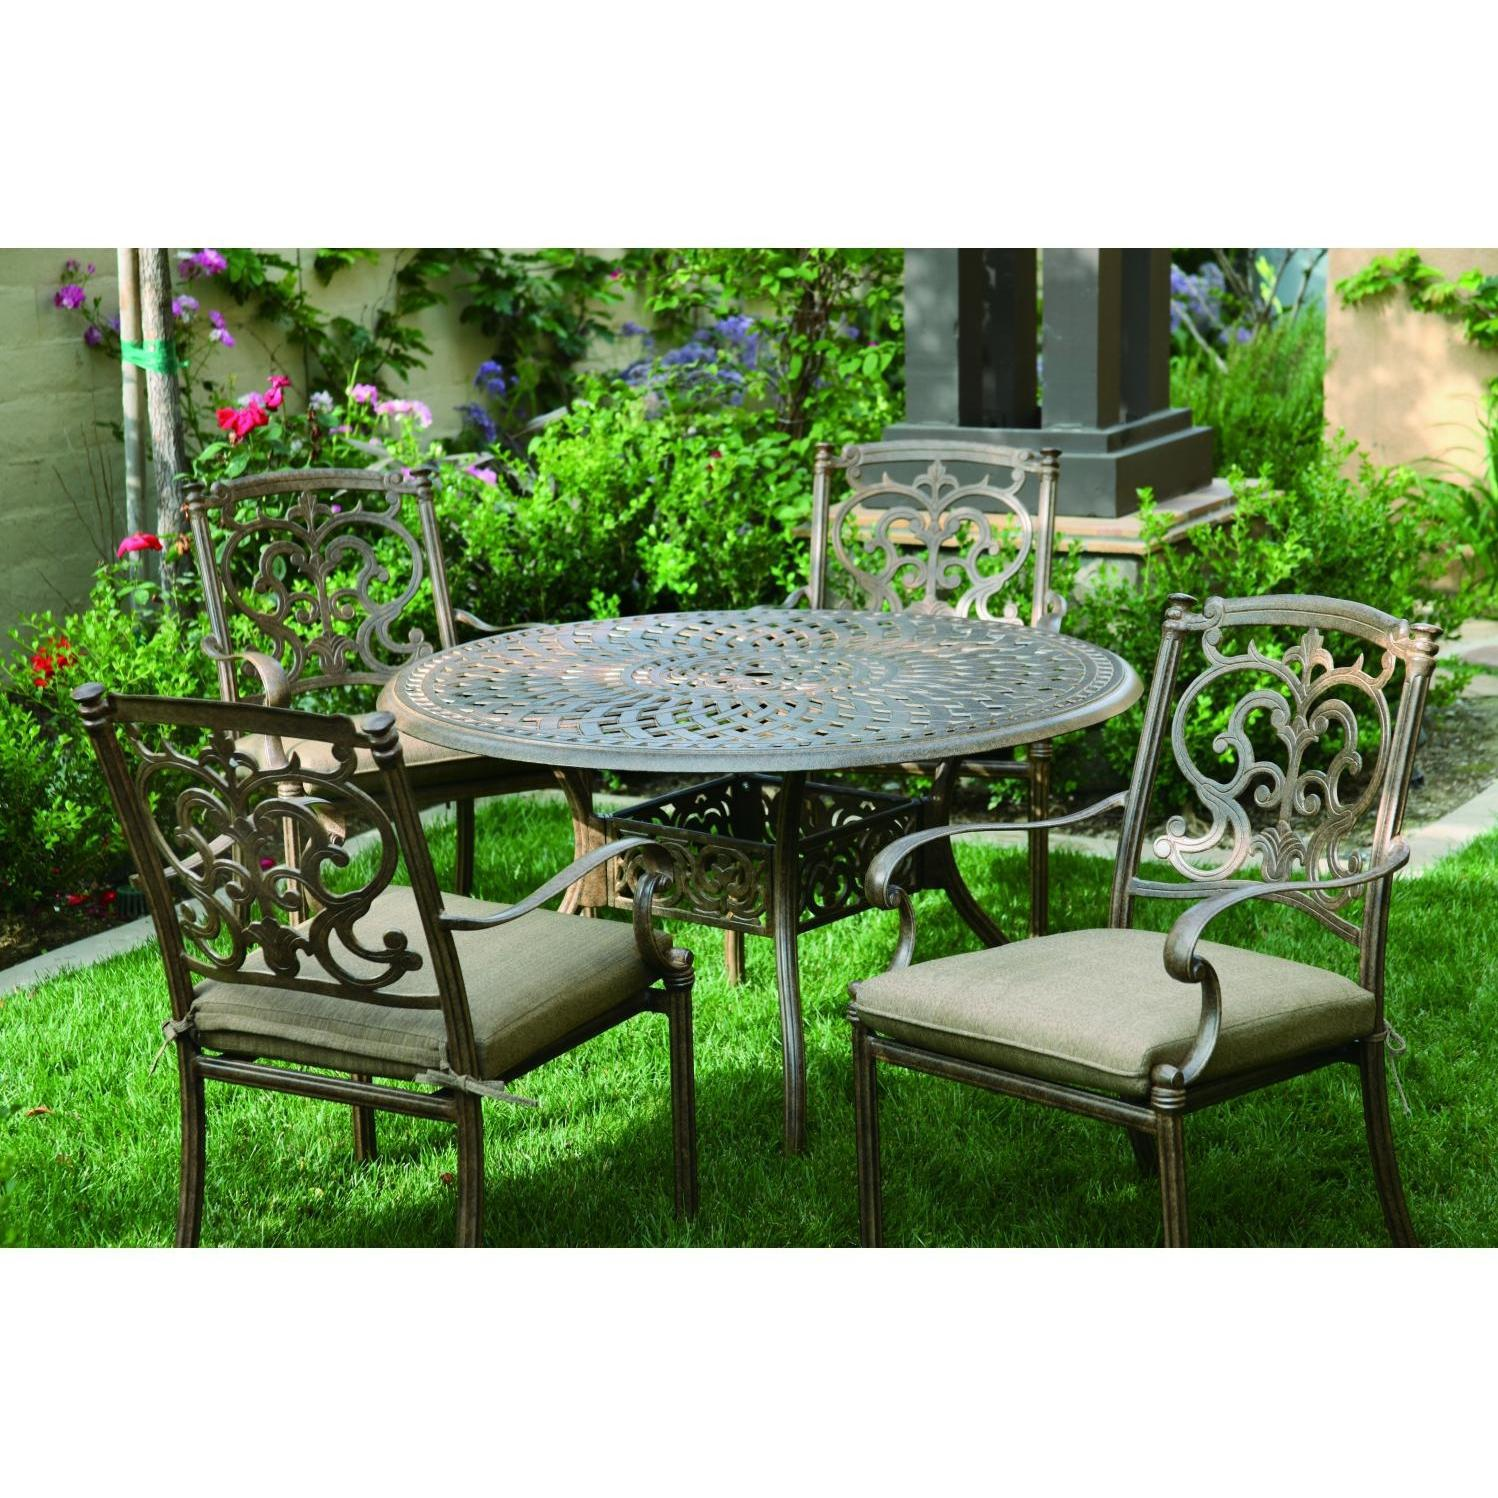 Darlee santa barbara 5 piece cast aluminum patio dining set for Outdoor dining sets for 12